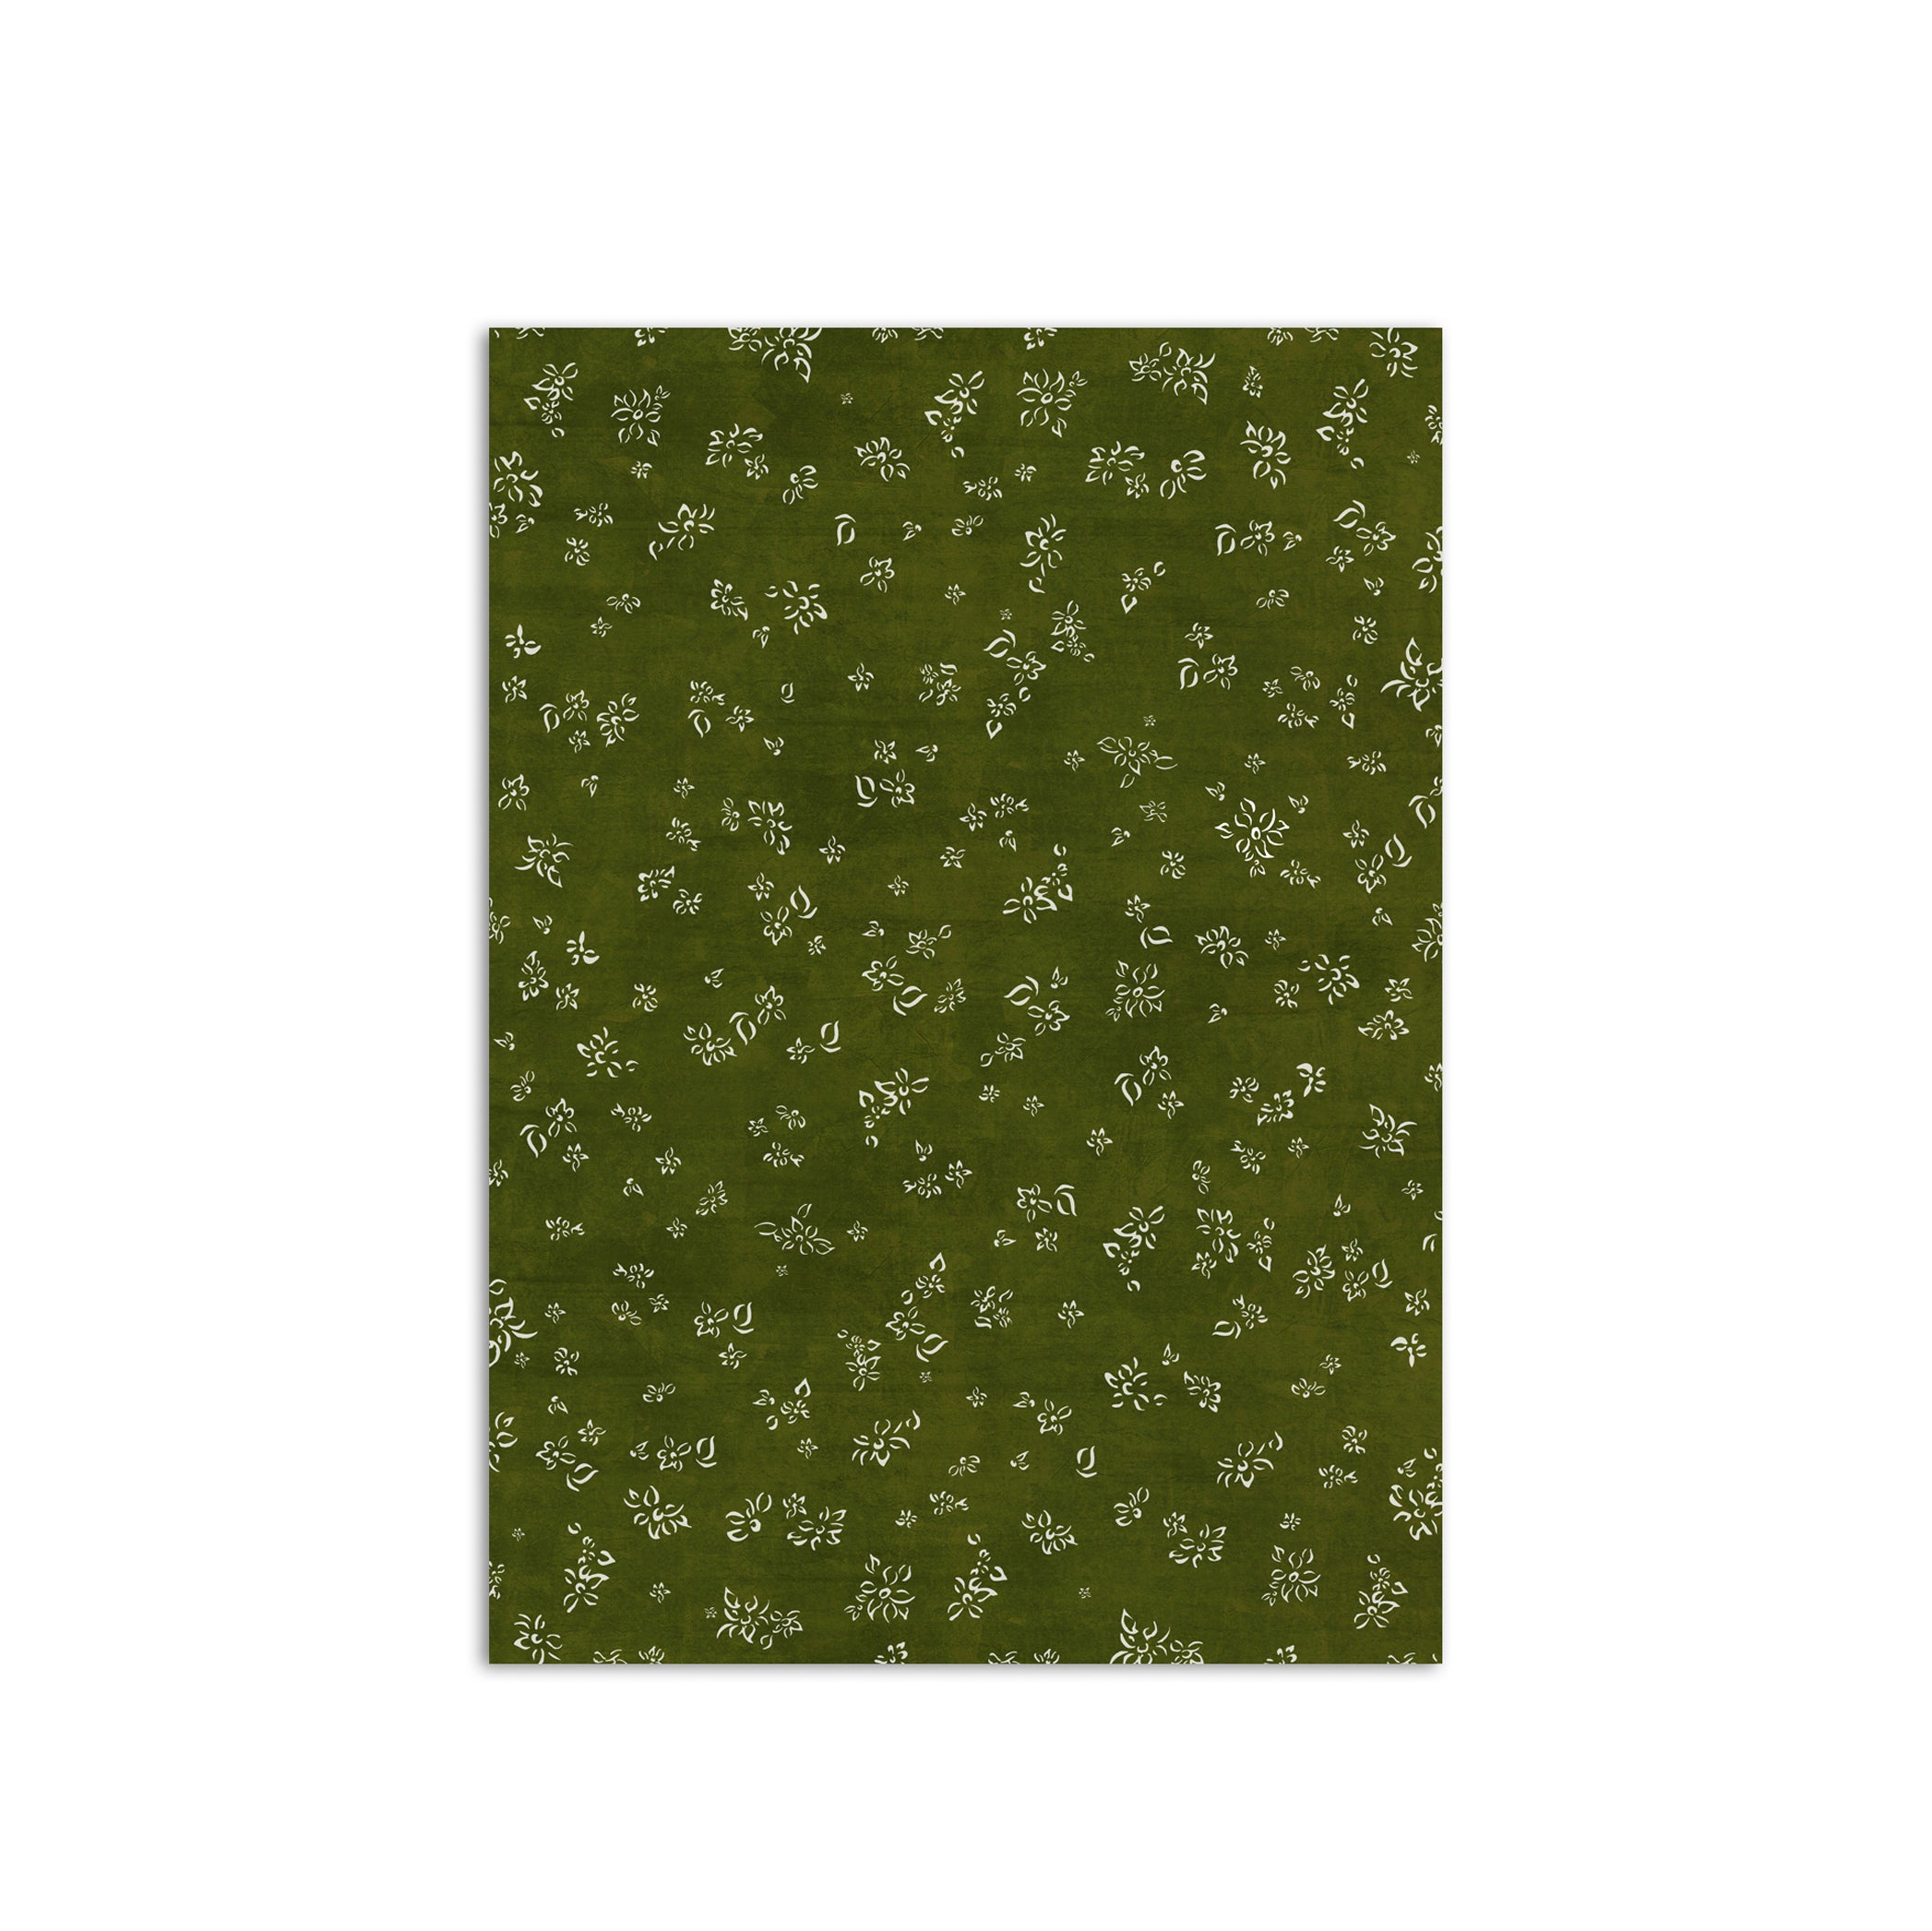 S&B Falling Flower Wrapping Paper in Dark Green, Roll of 4